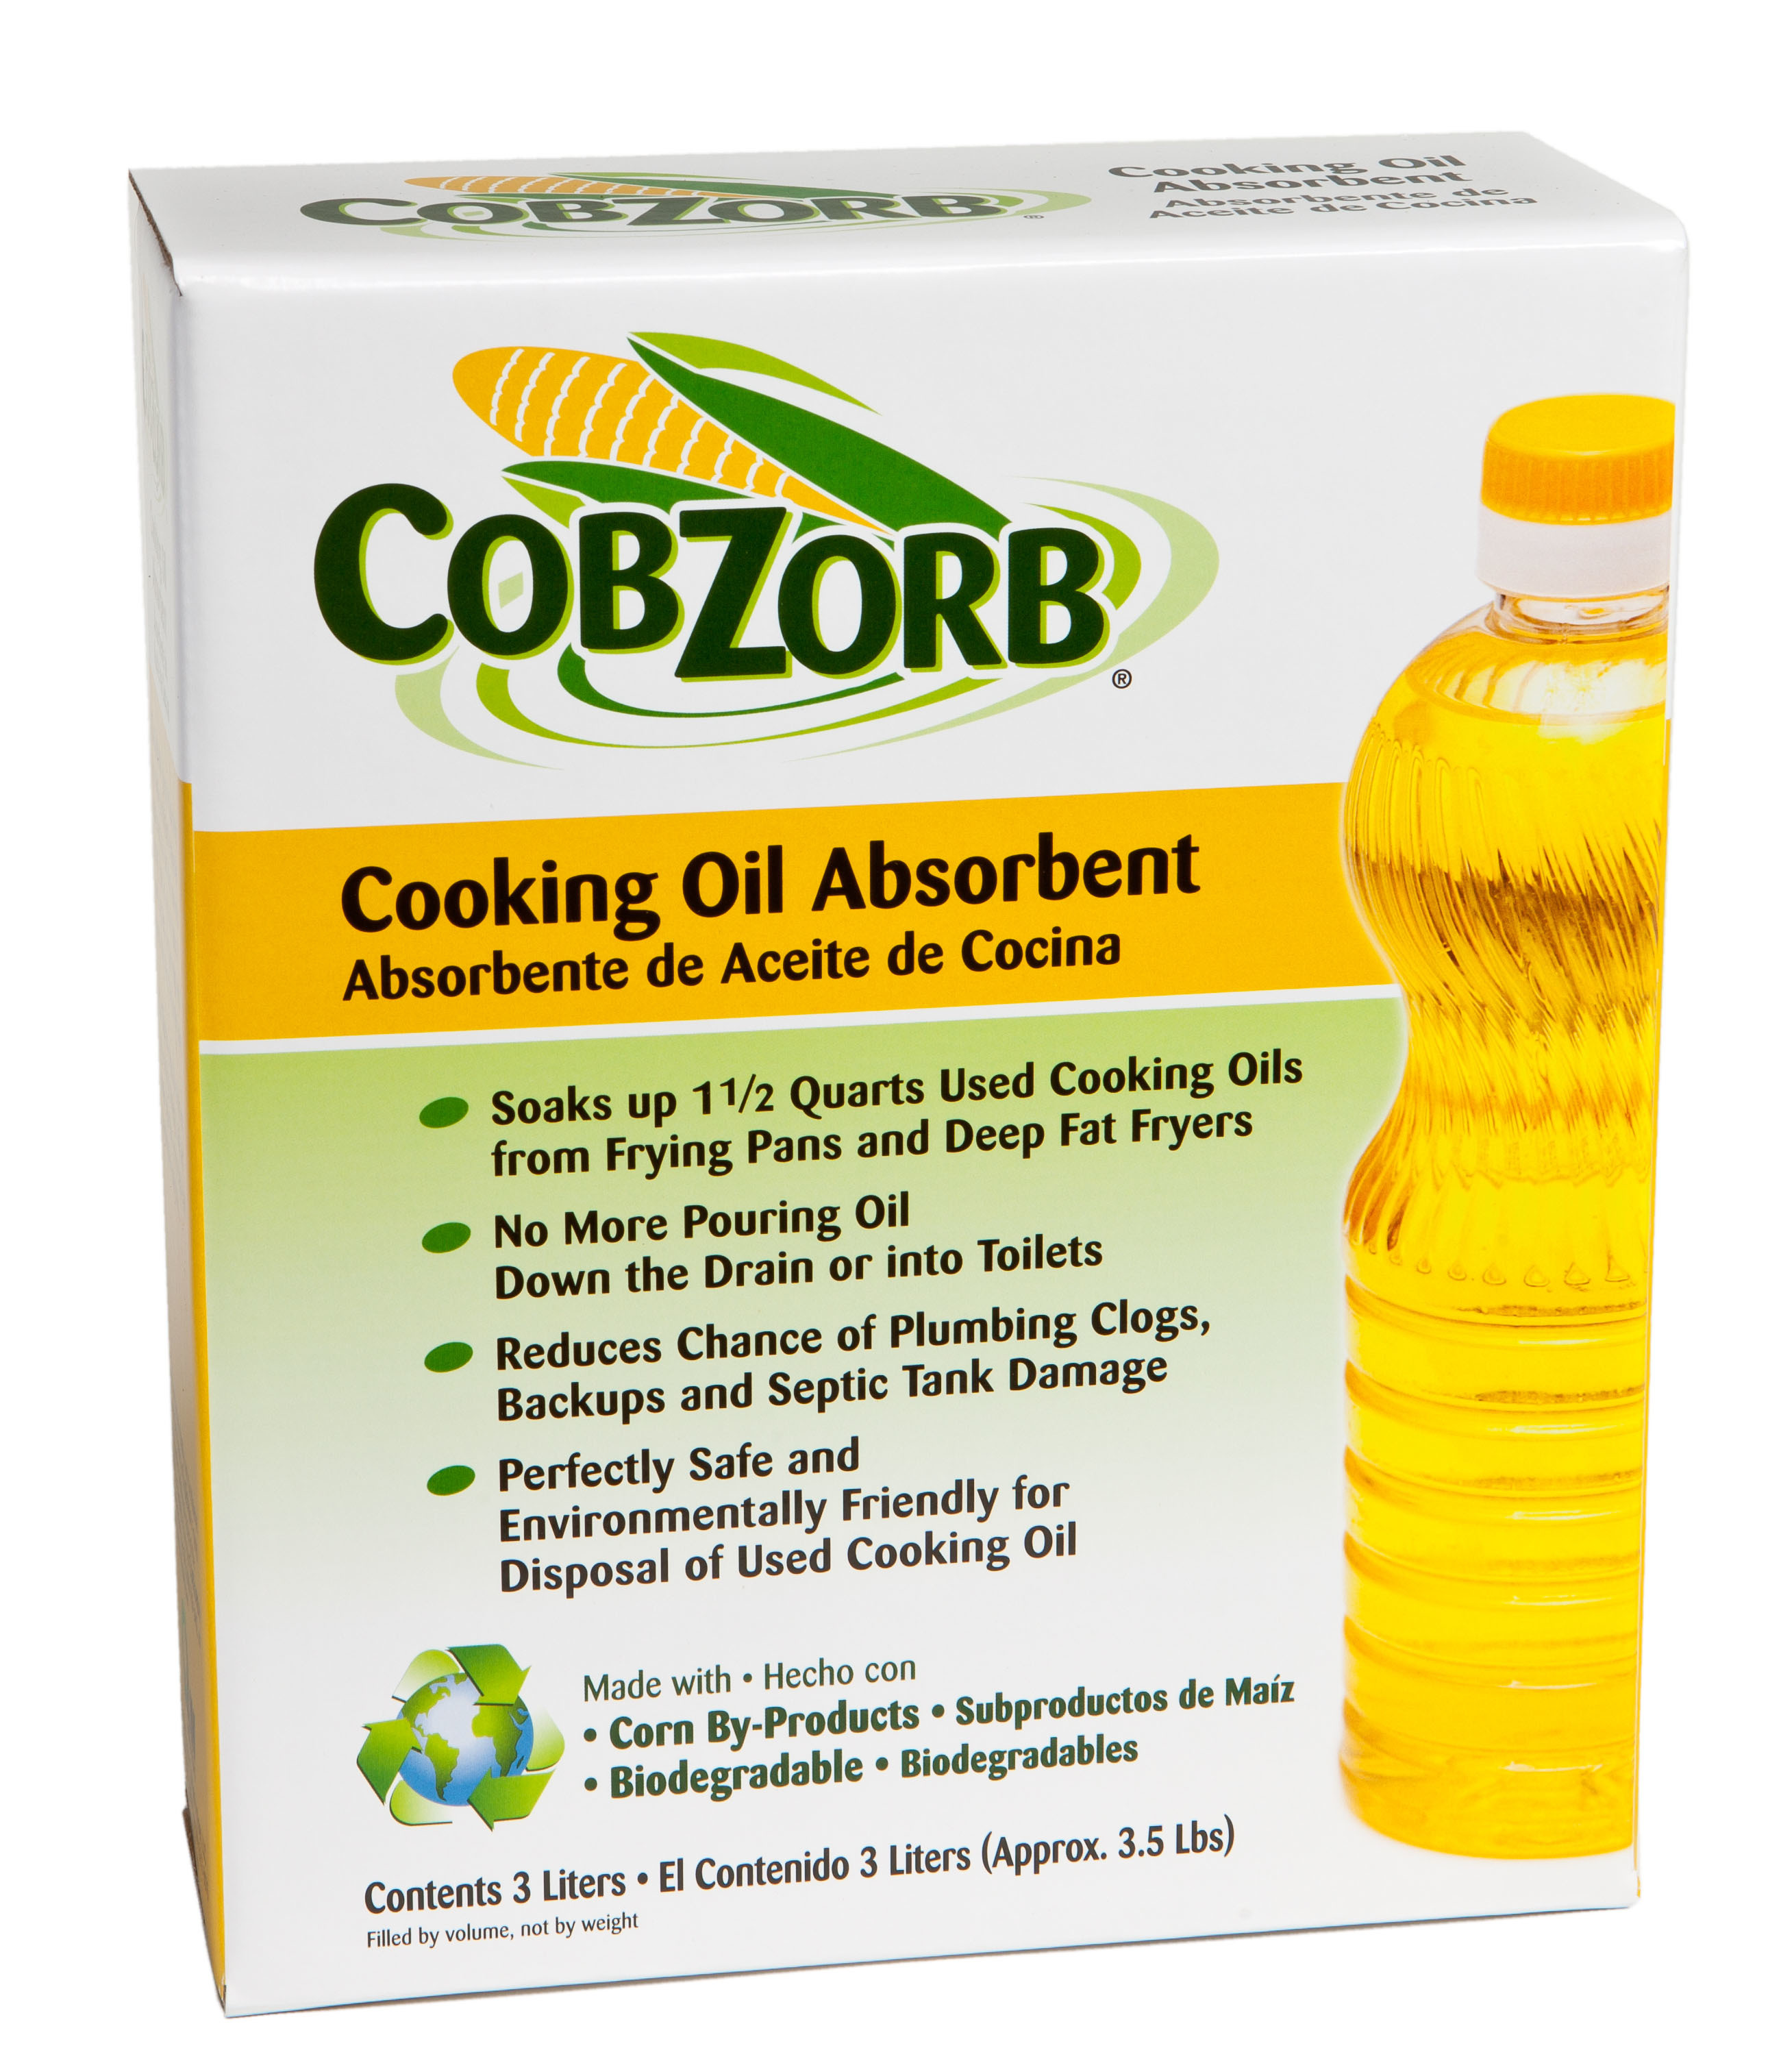 CobZorb® Cooking Oil Absorbent CZO-box 3.5-DS